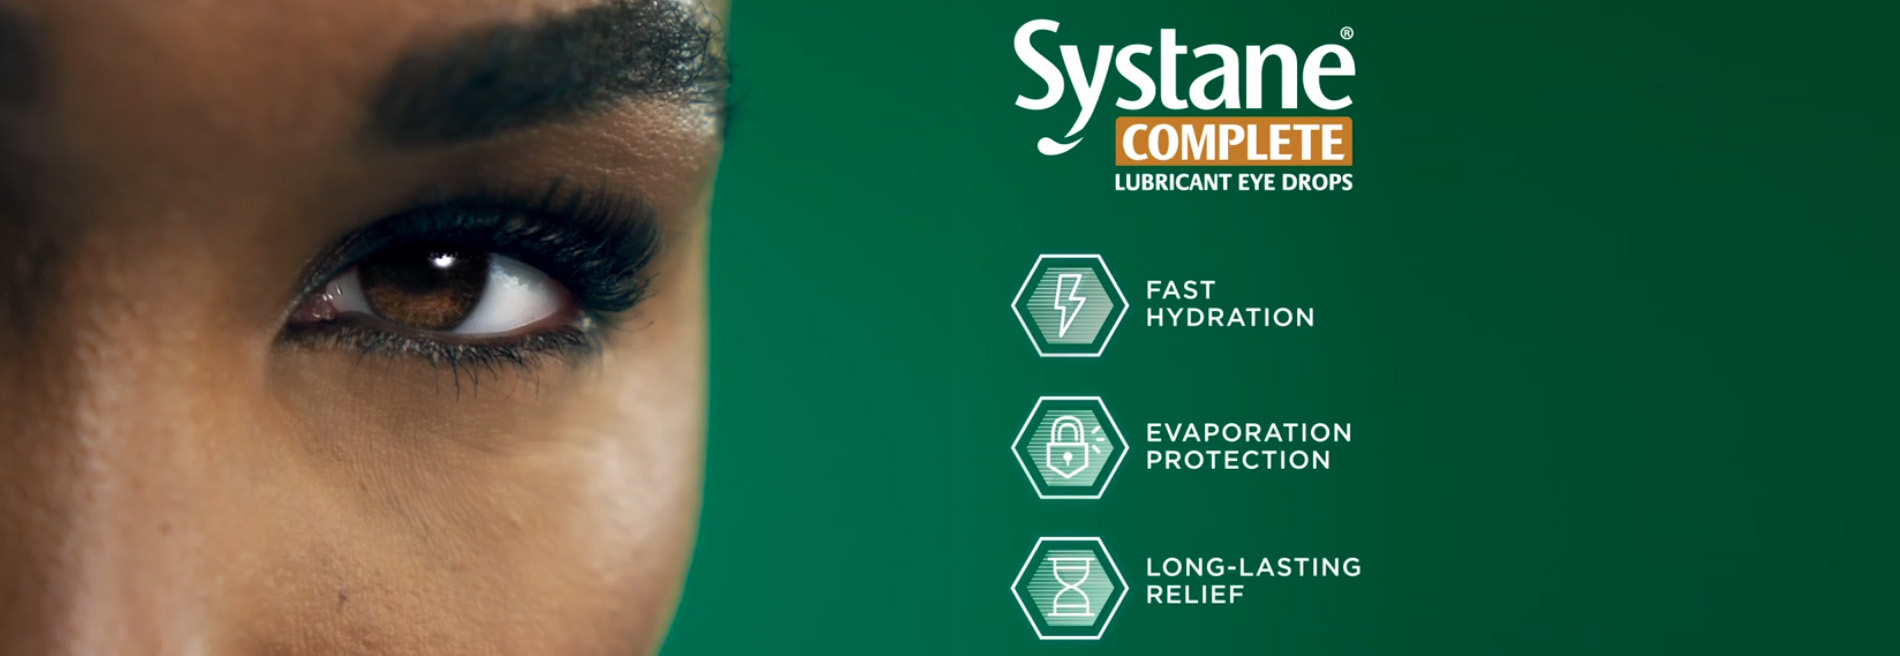 Closeup image of Venus Williams white clear eye with a bottle SystaneComplete logo.